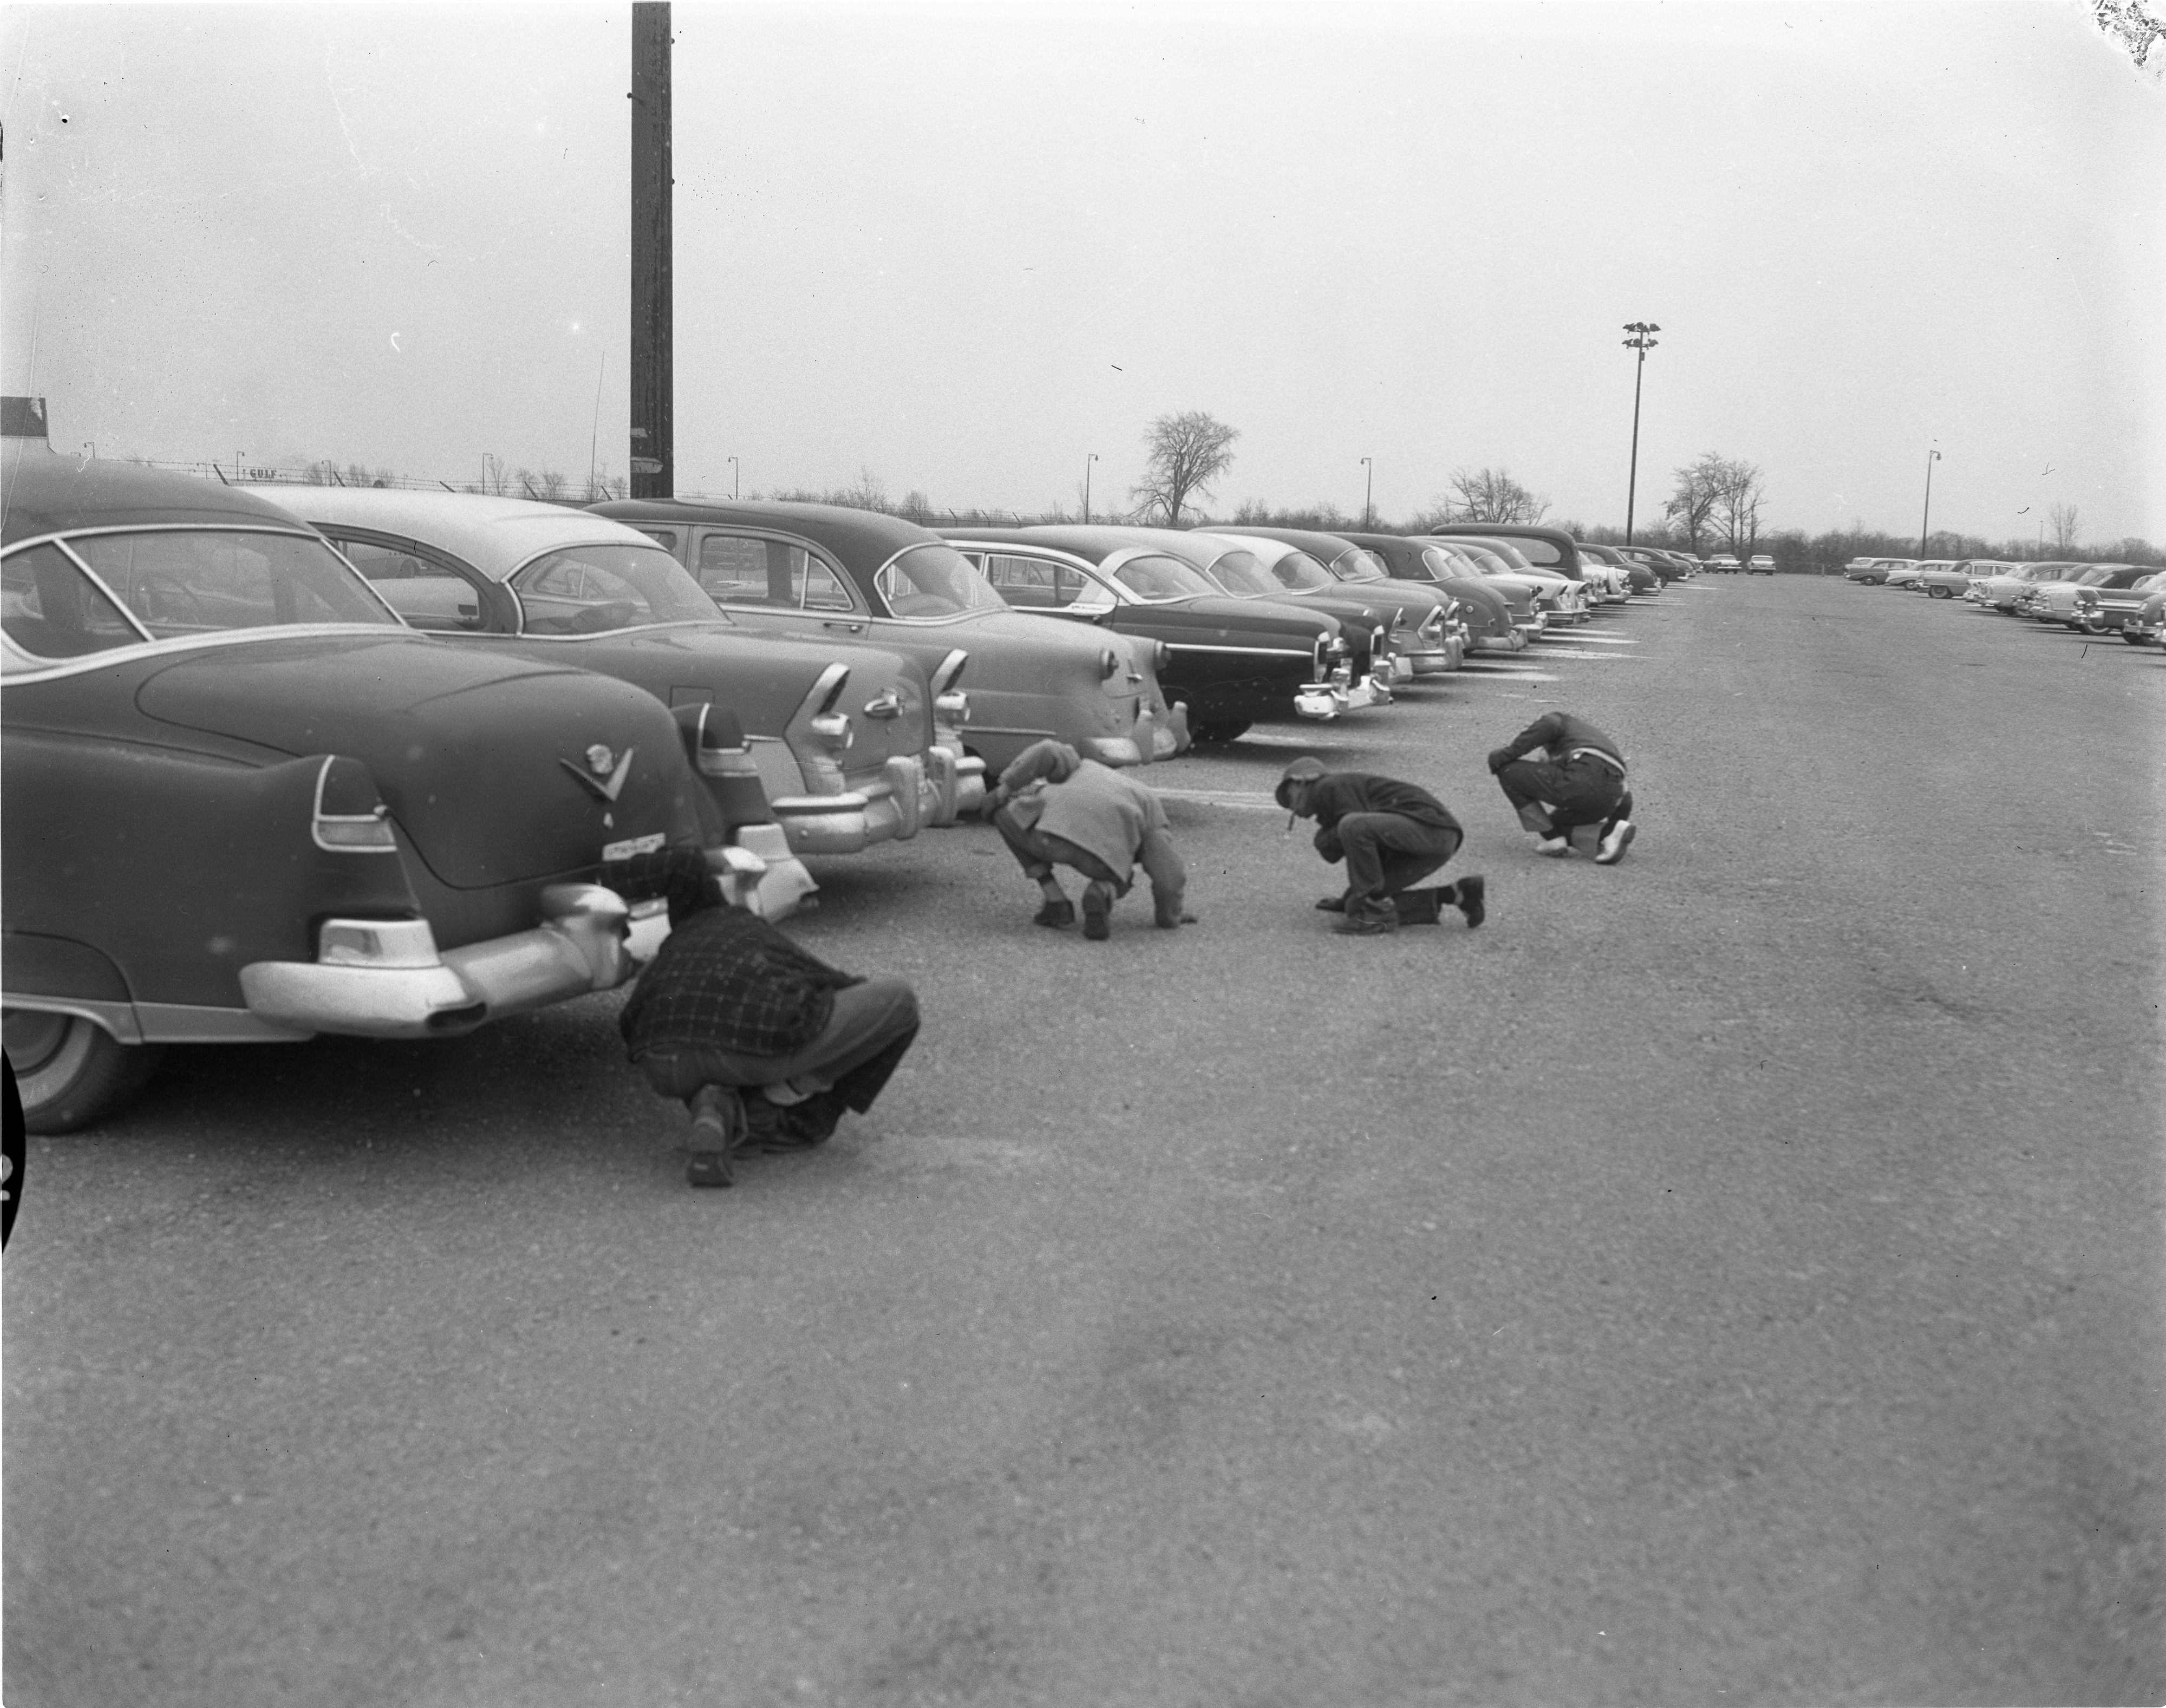 Detectives & Members Of The Willow Village Junior Deputy League Search For Clues In Willow Run Airport Murder, December 29, 1956 image